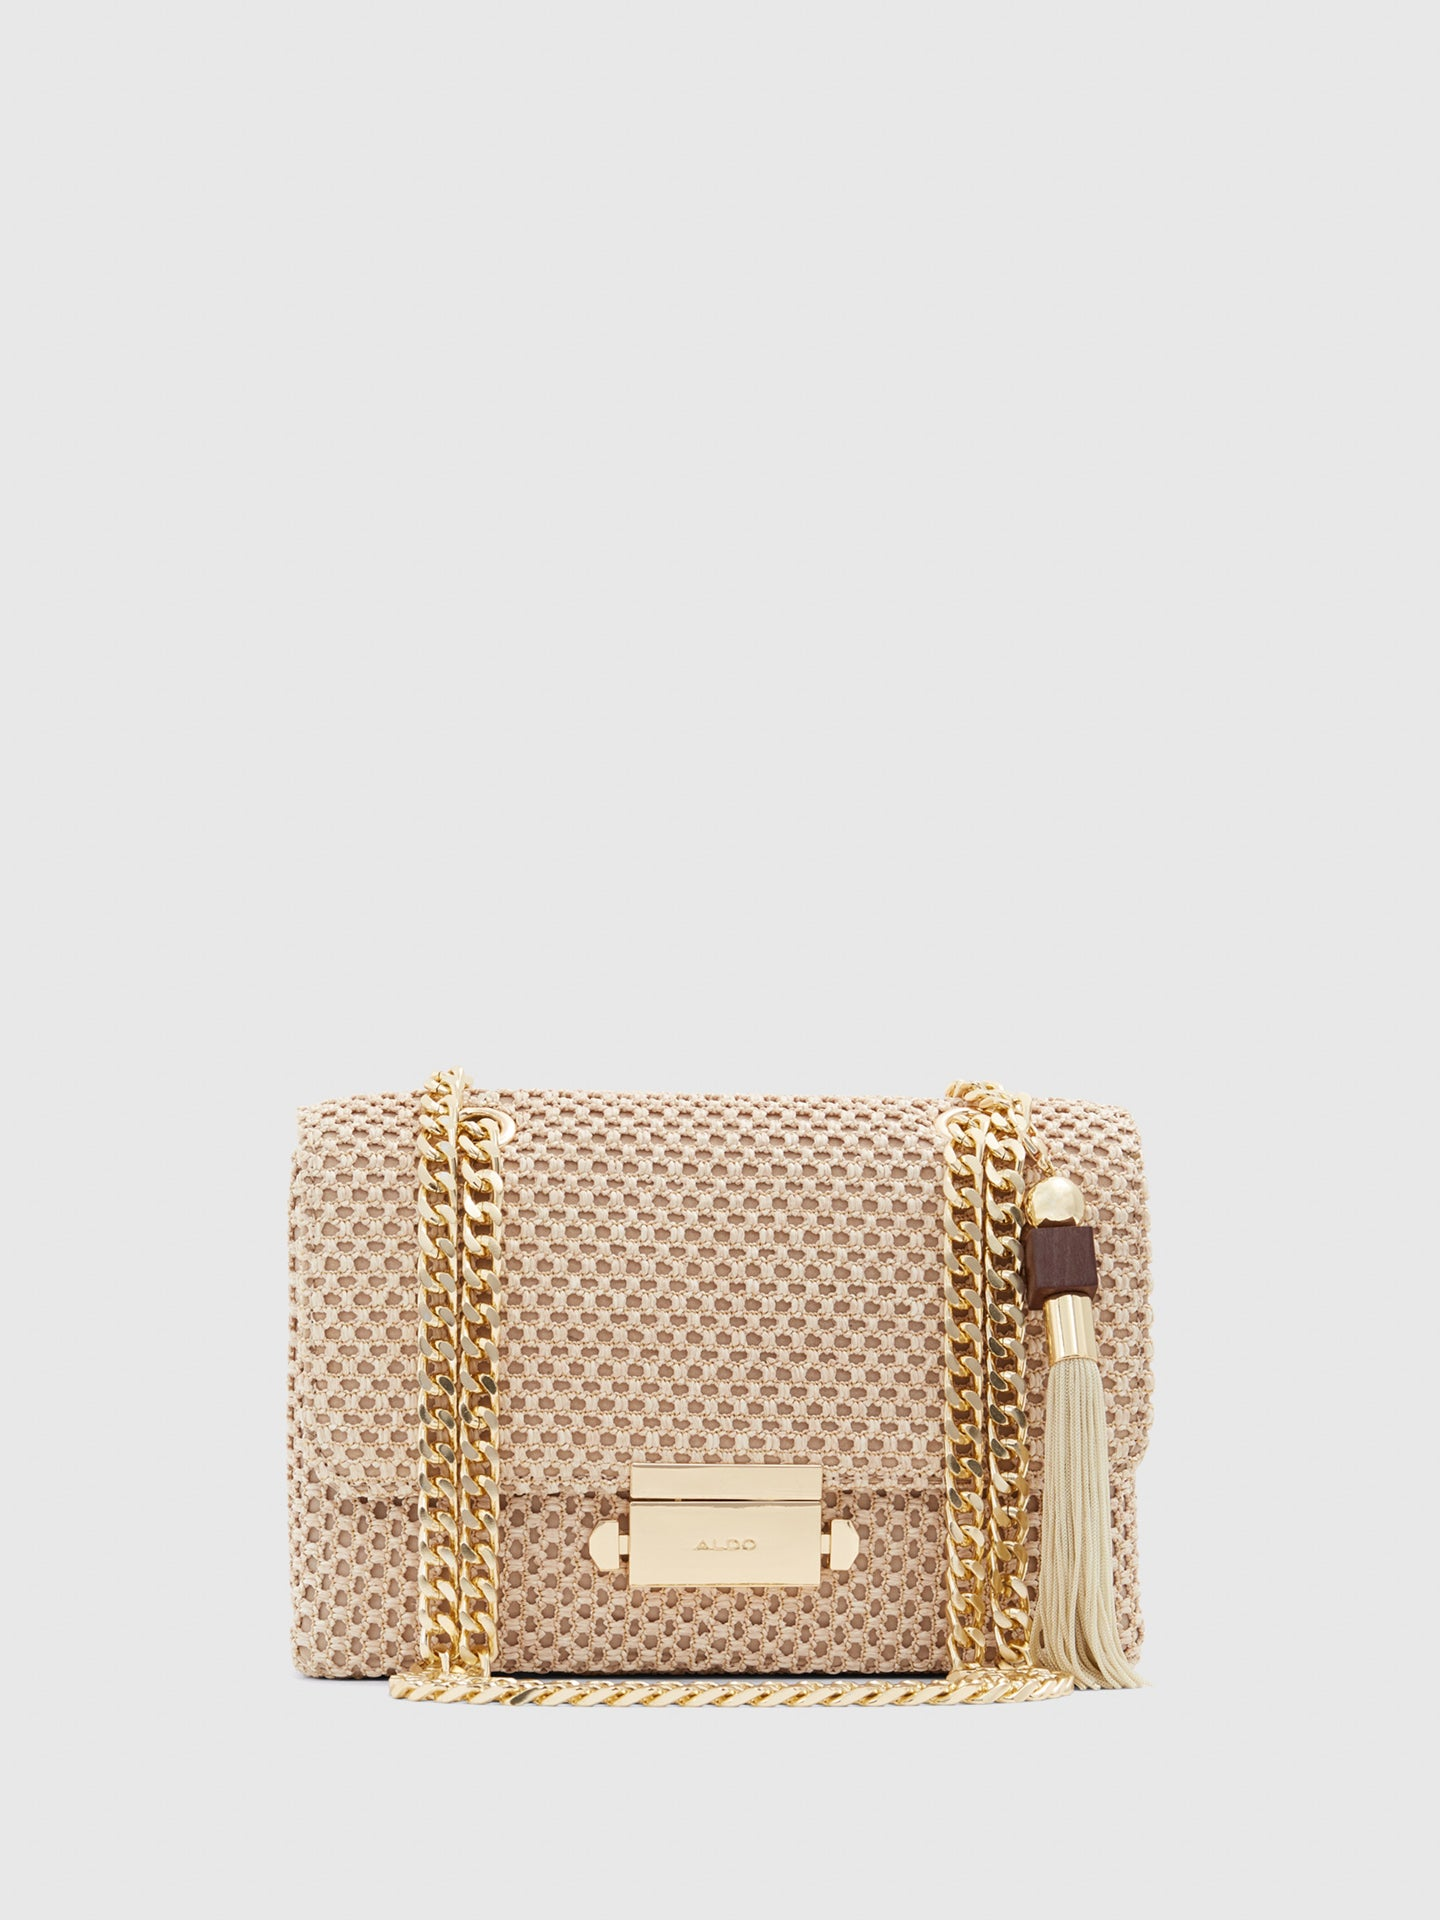 Aldo Beige Shoulder Bag